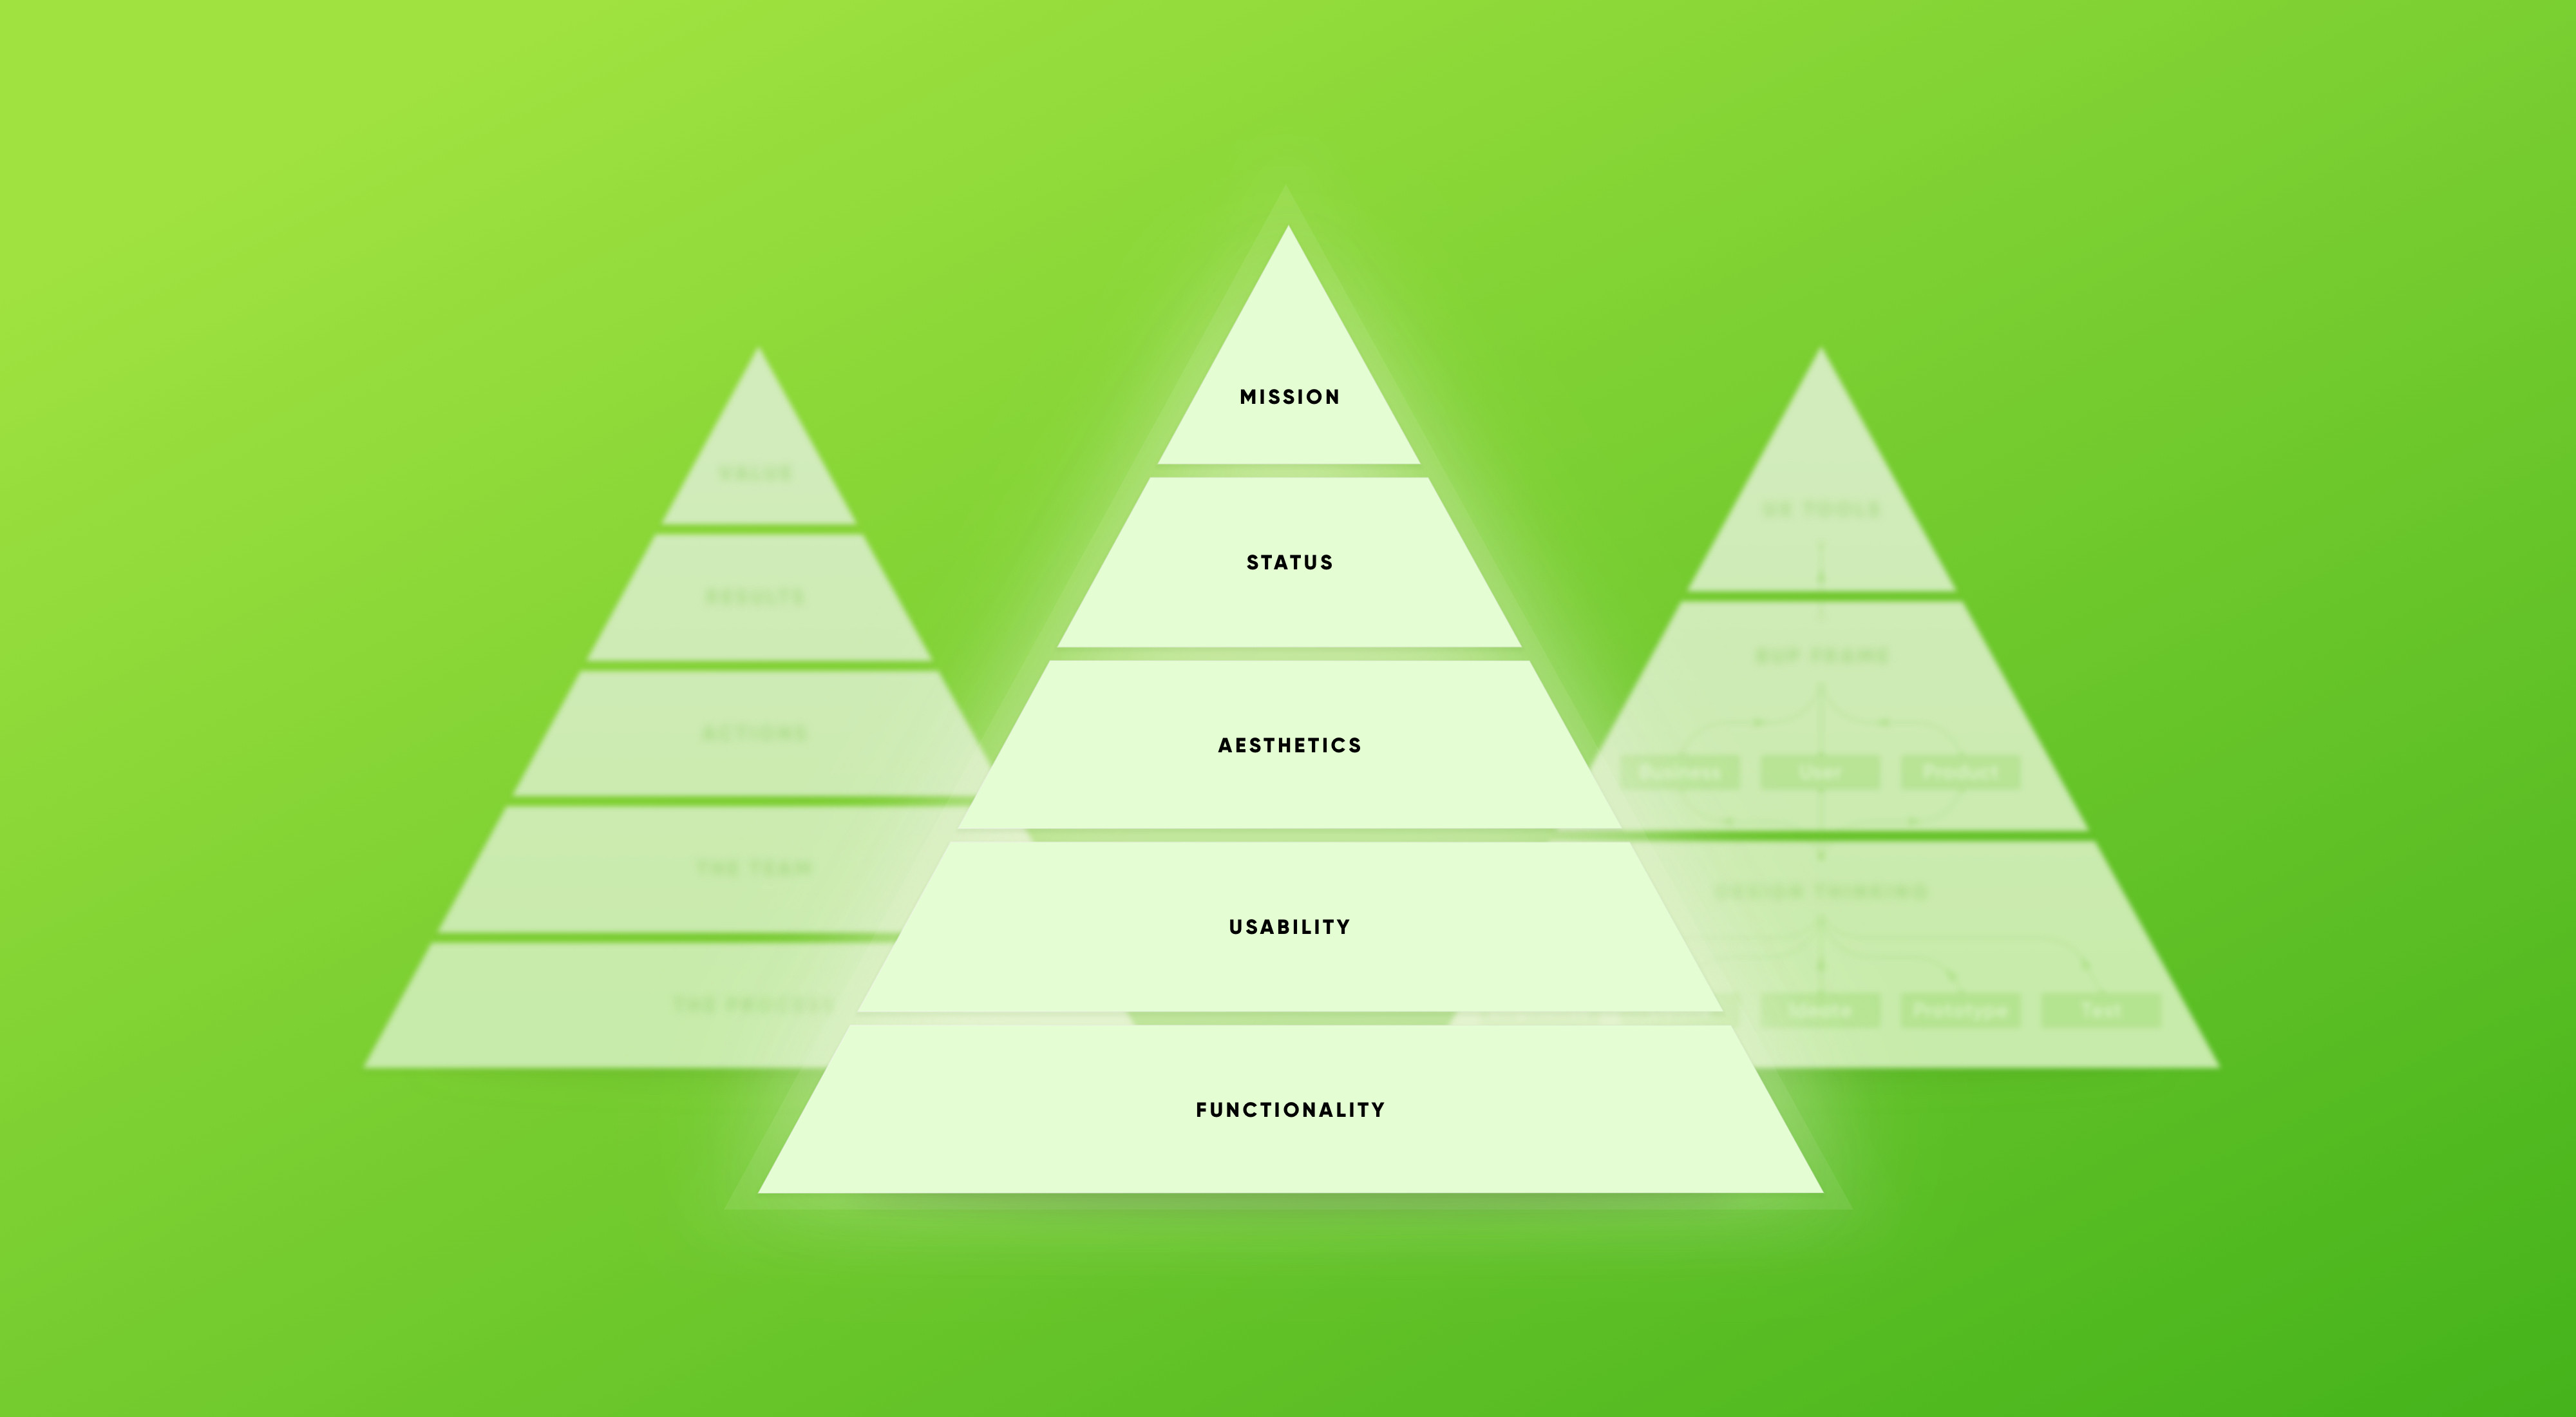 🎧 Financial UX Design Methodology: the Value Pyramid